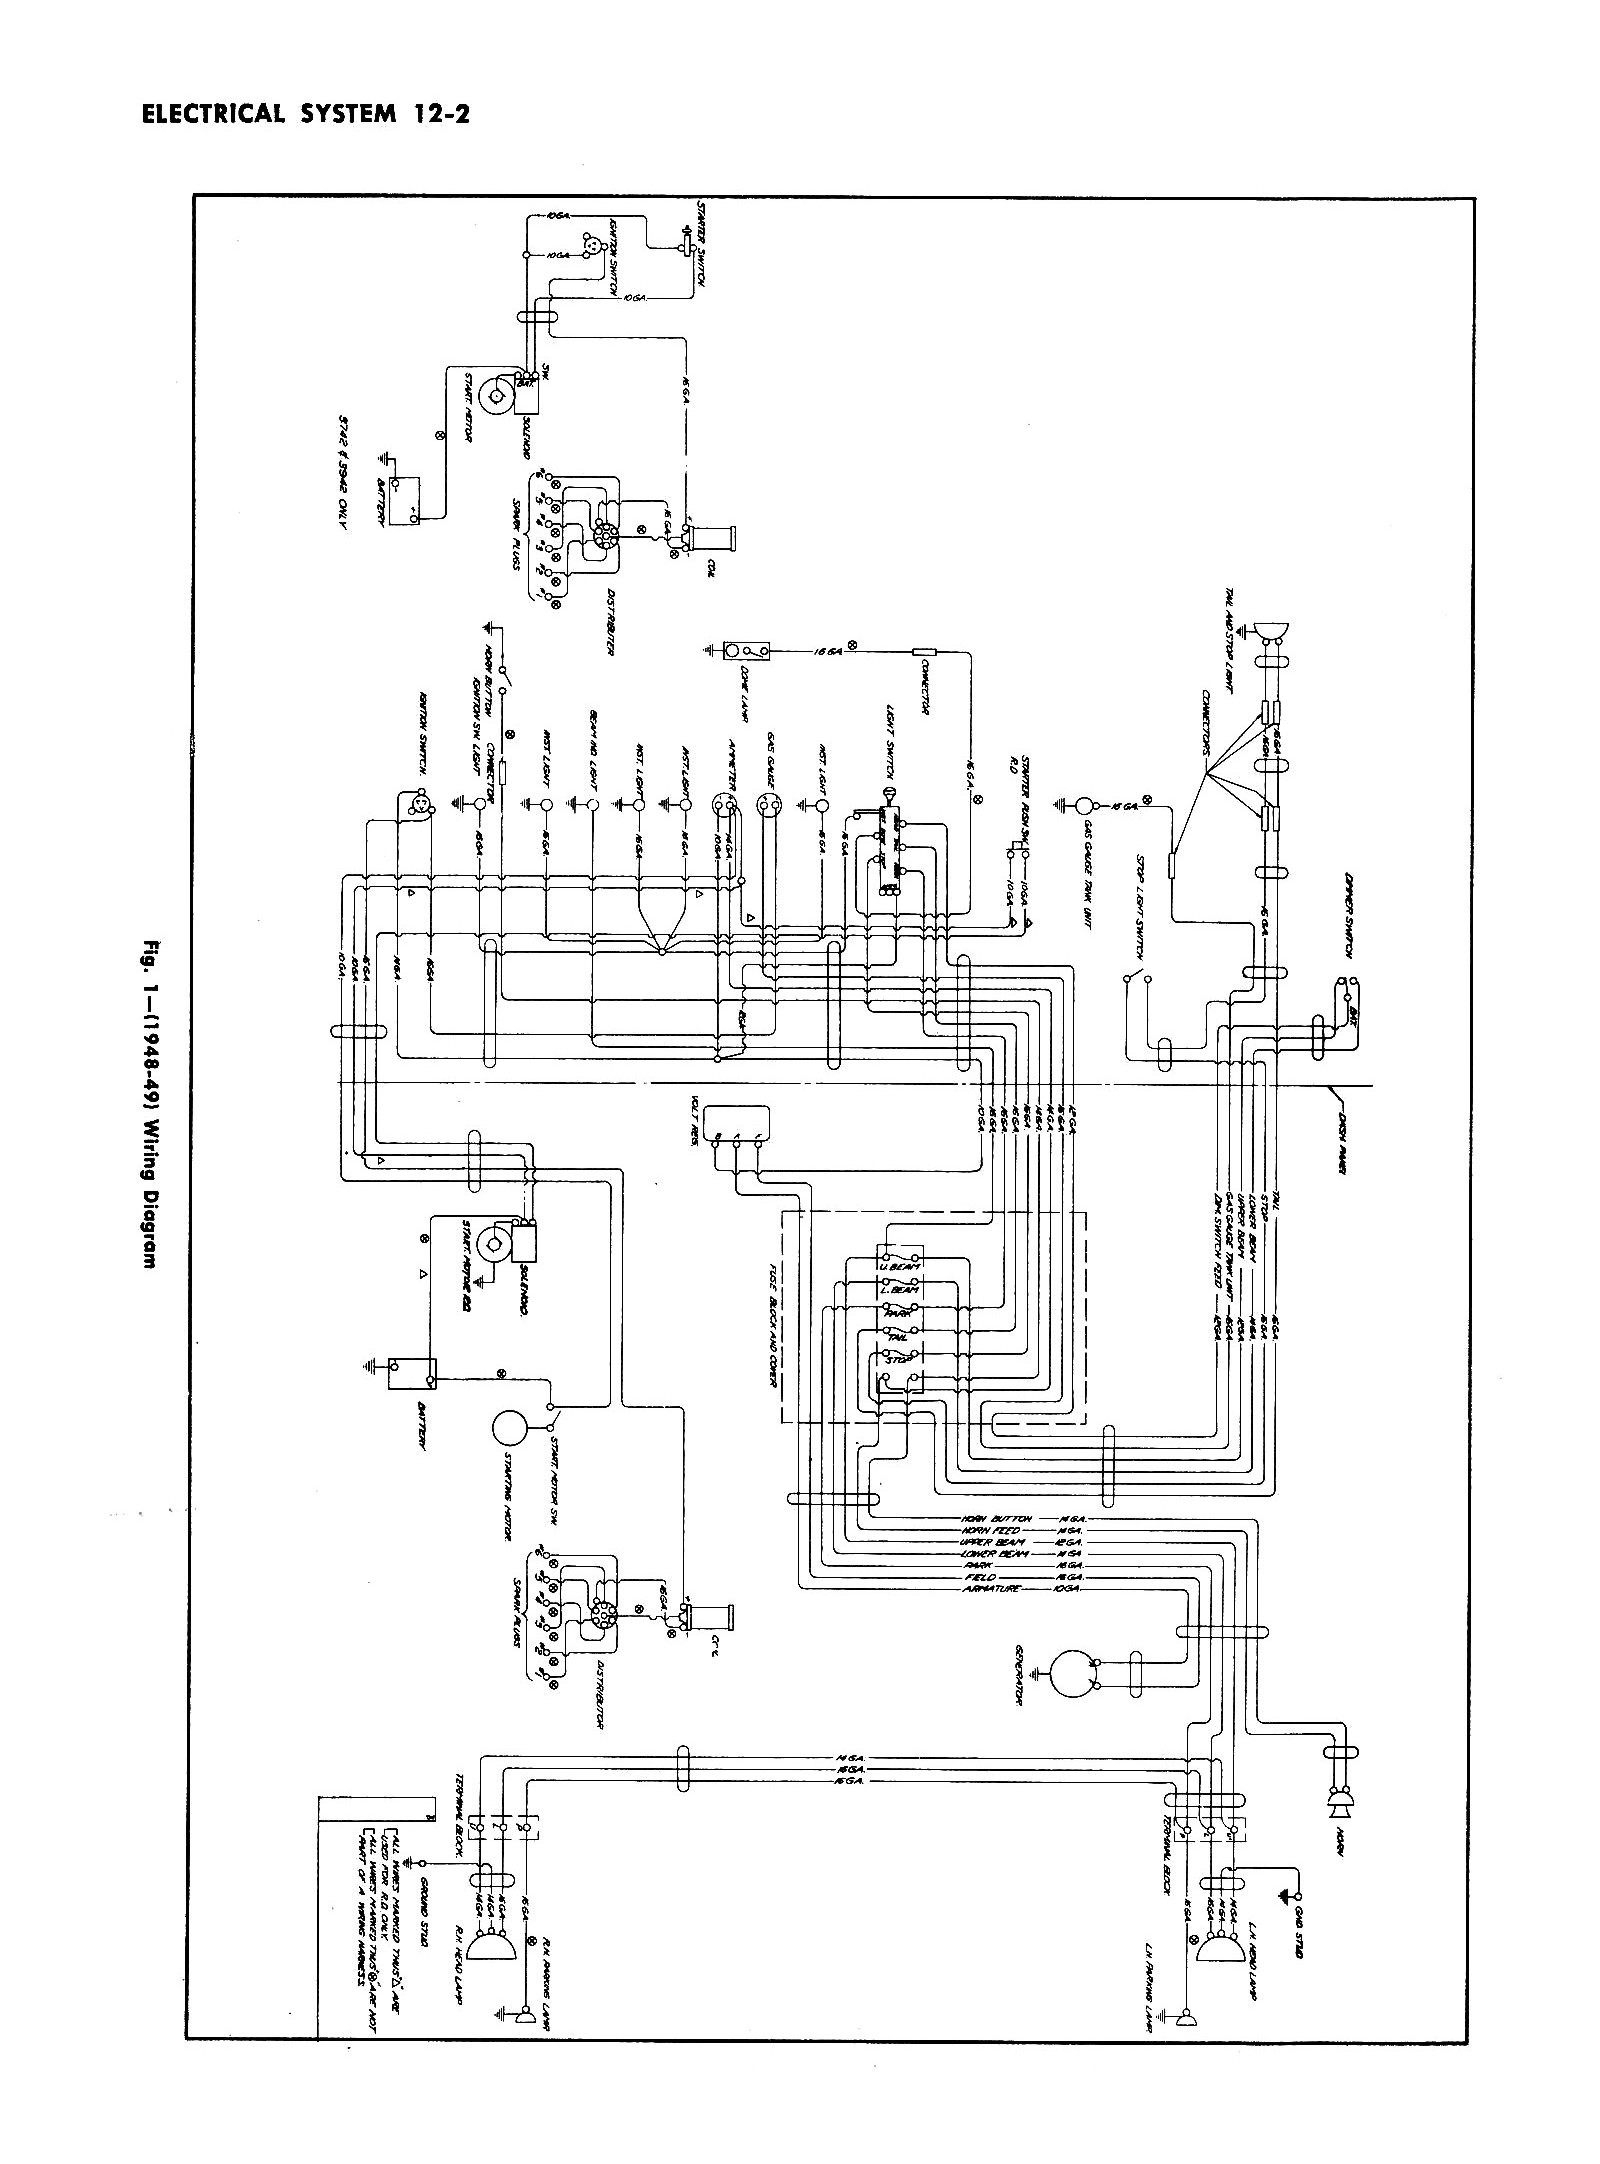 55 Chevy Truck Wiring Diagram   Manual E-Books - Chevy Steering Column Wiring Diagram